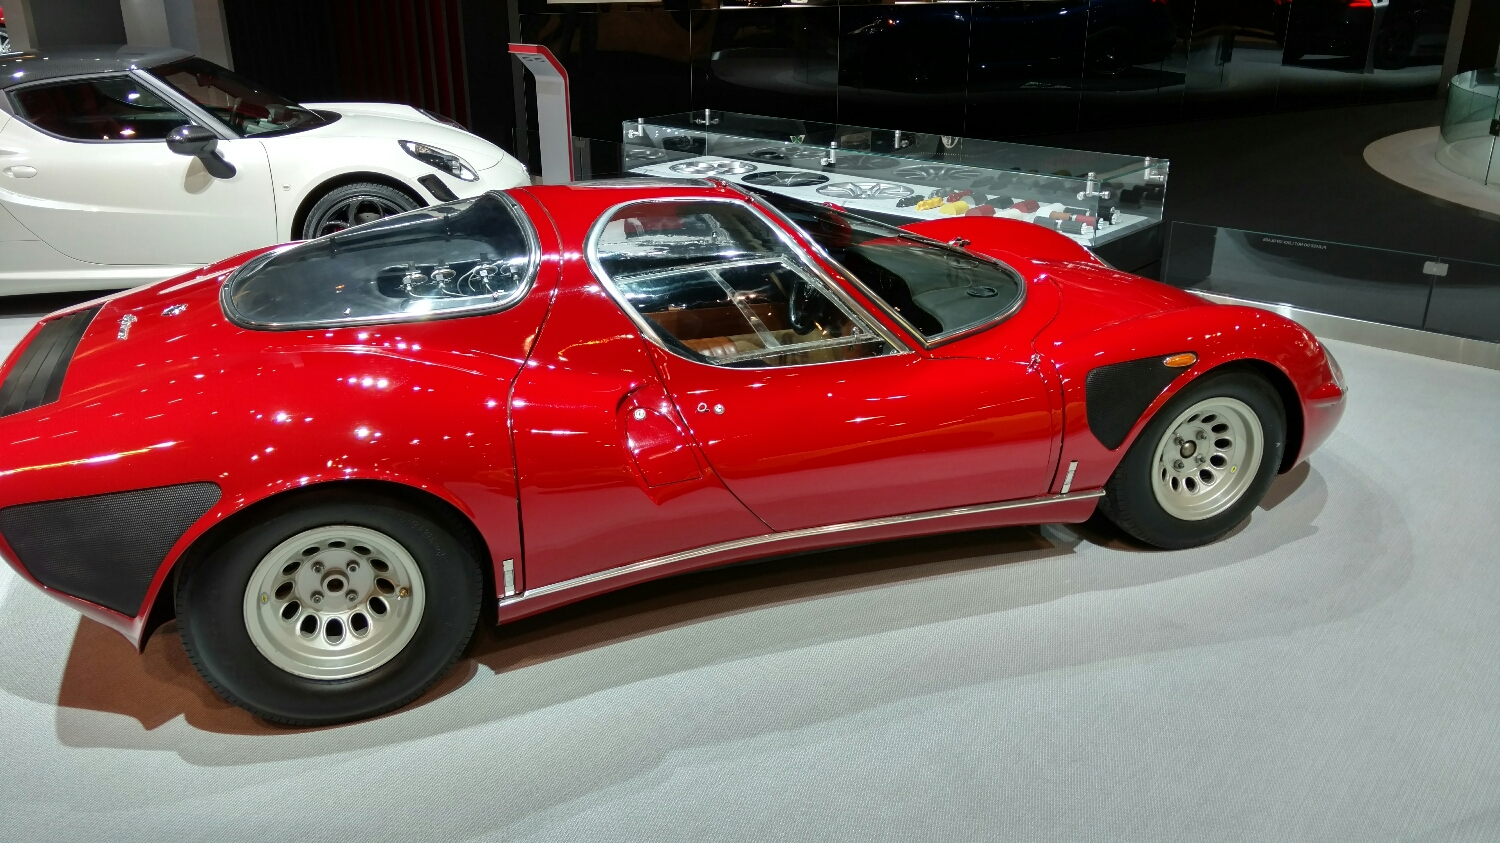 Old Alfa=I'd have looked at this all day if I could